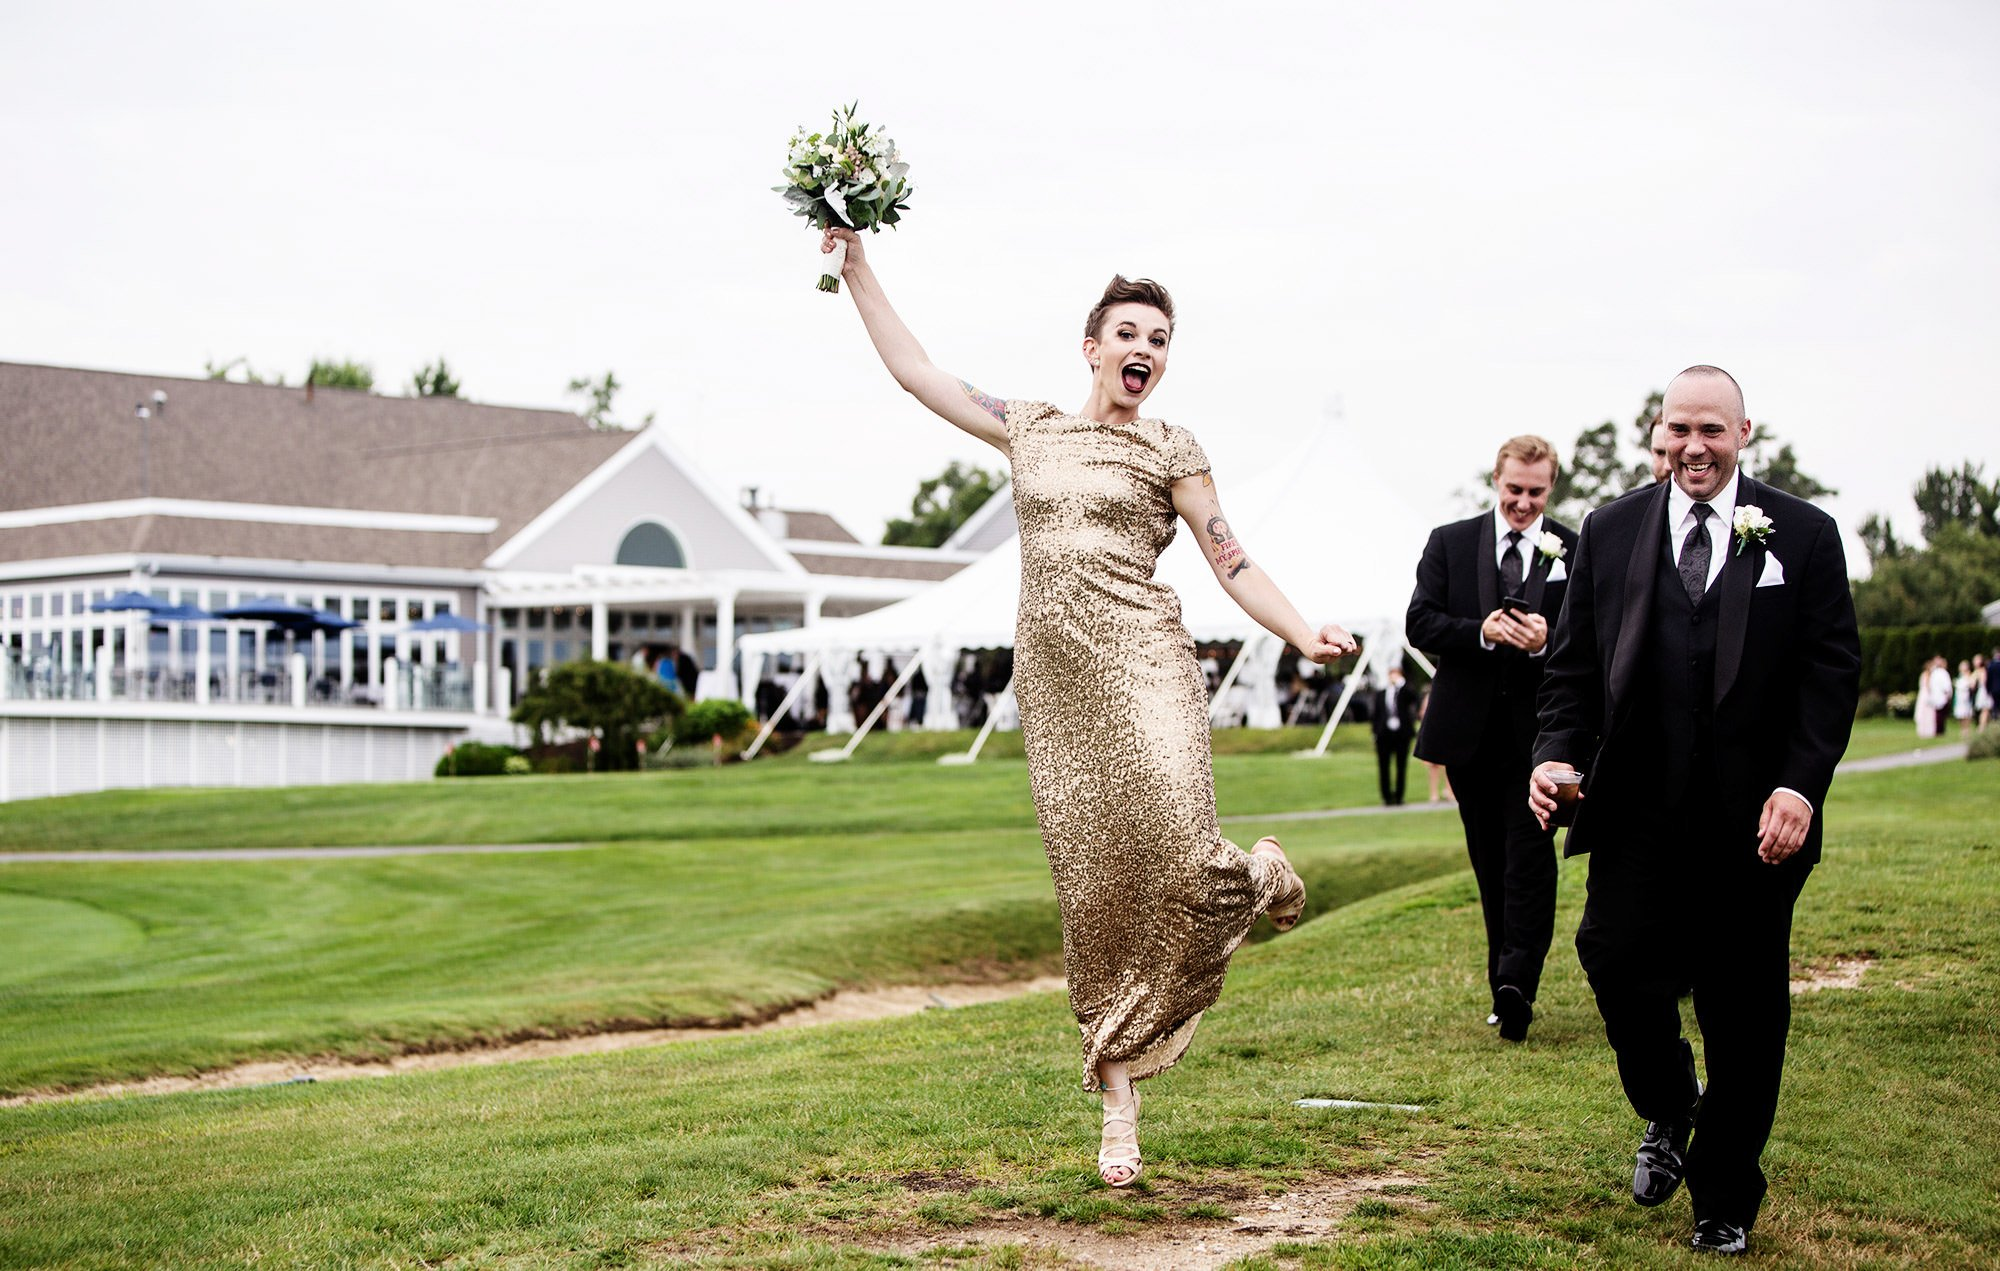 The wedding party celebrates following the White Cliffs Country Club wedding ceremony.